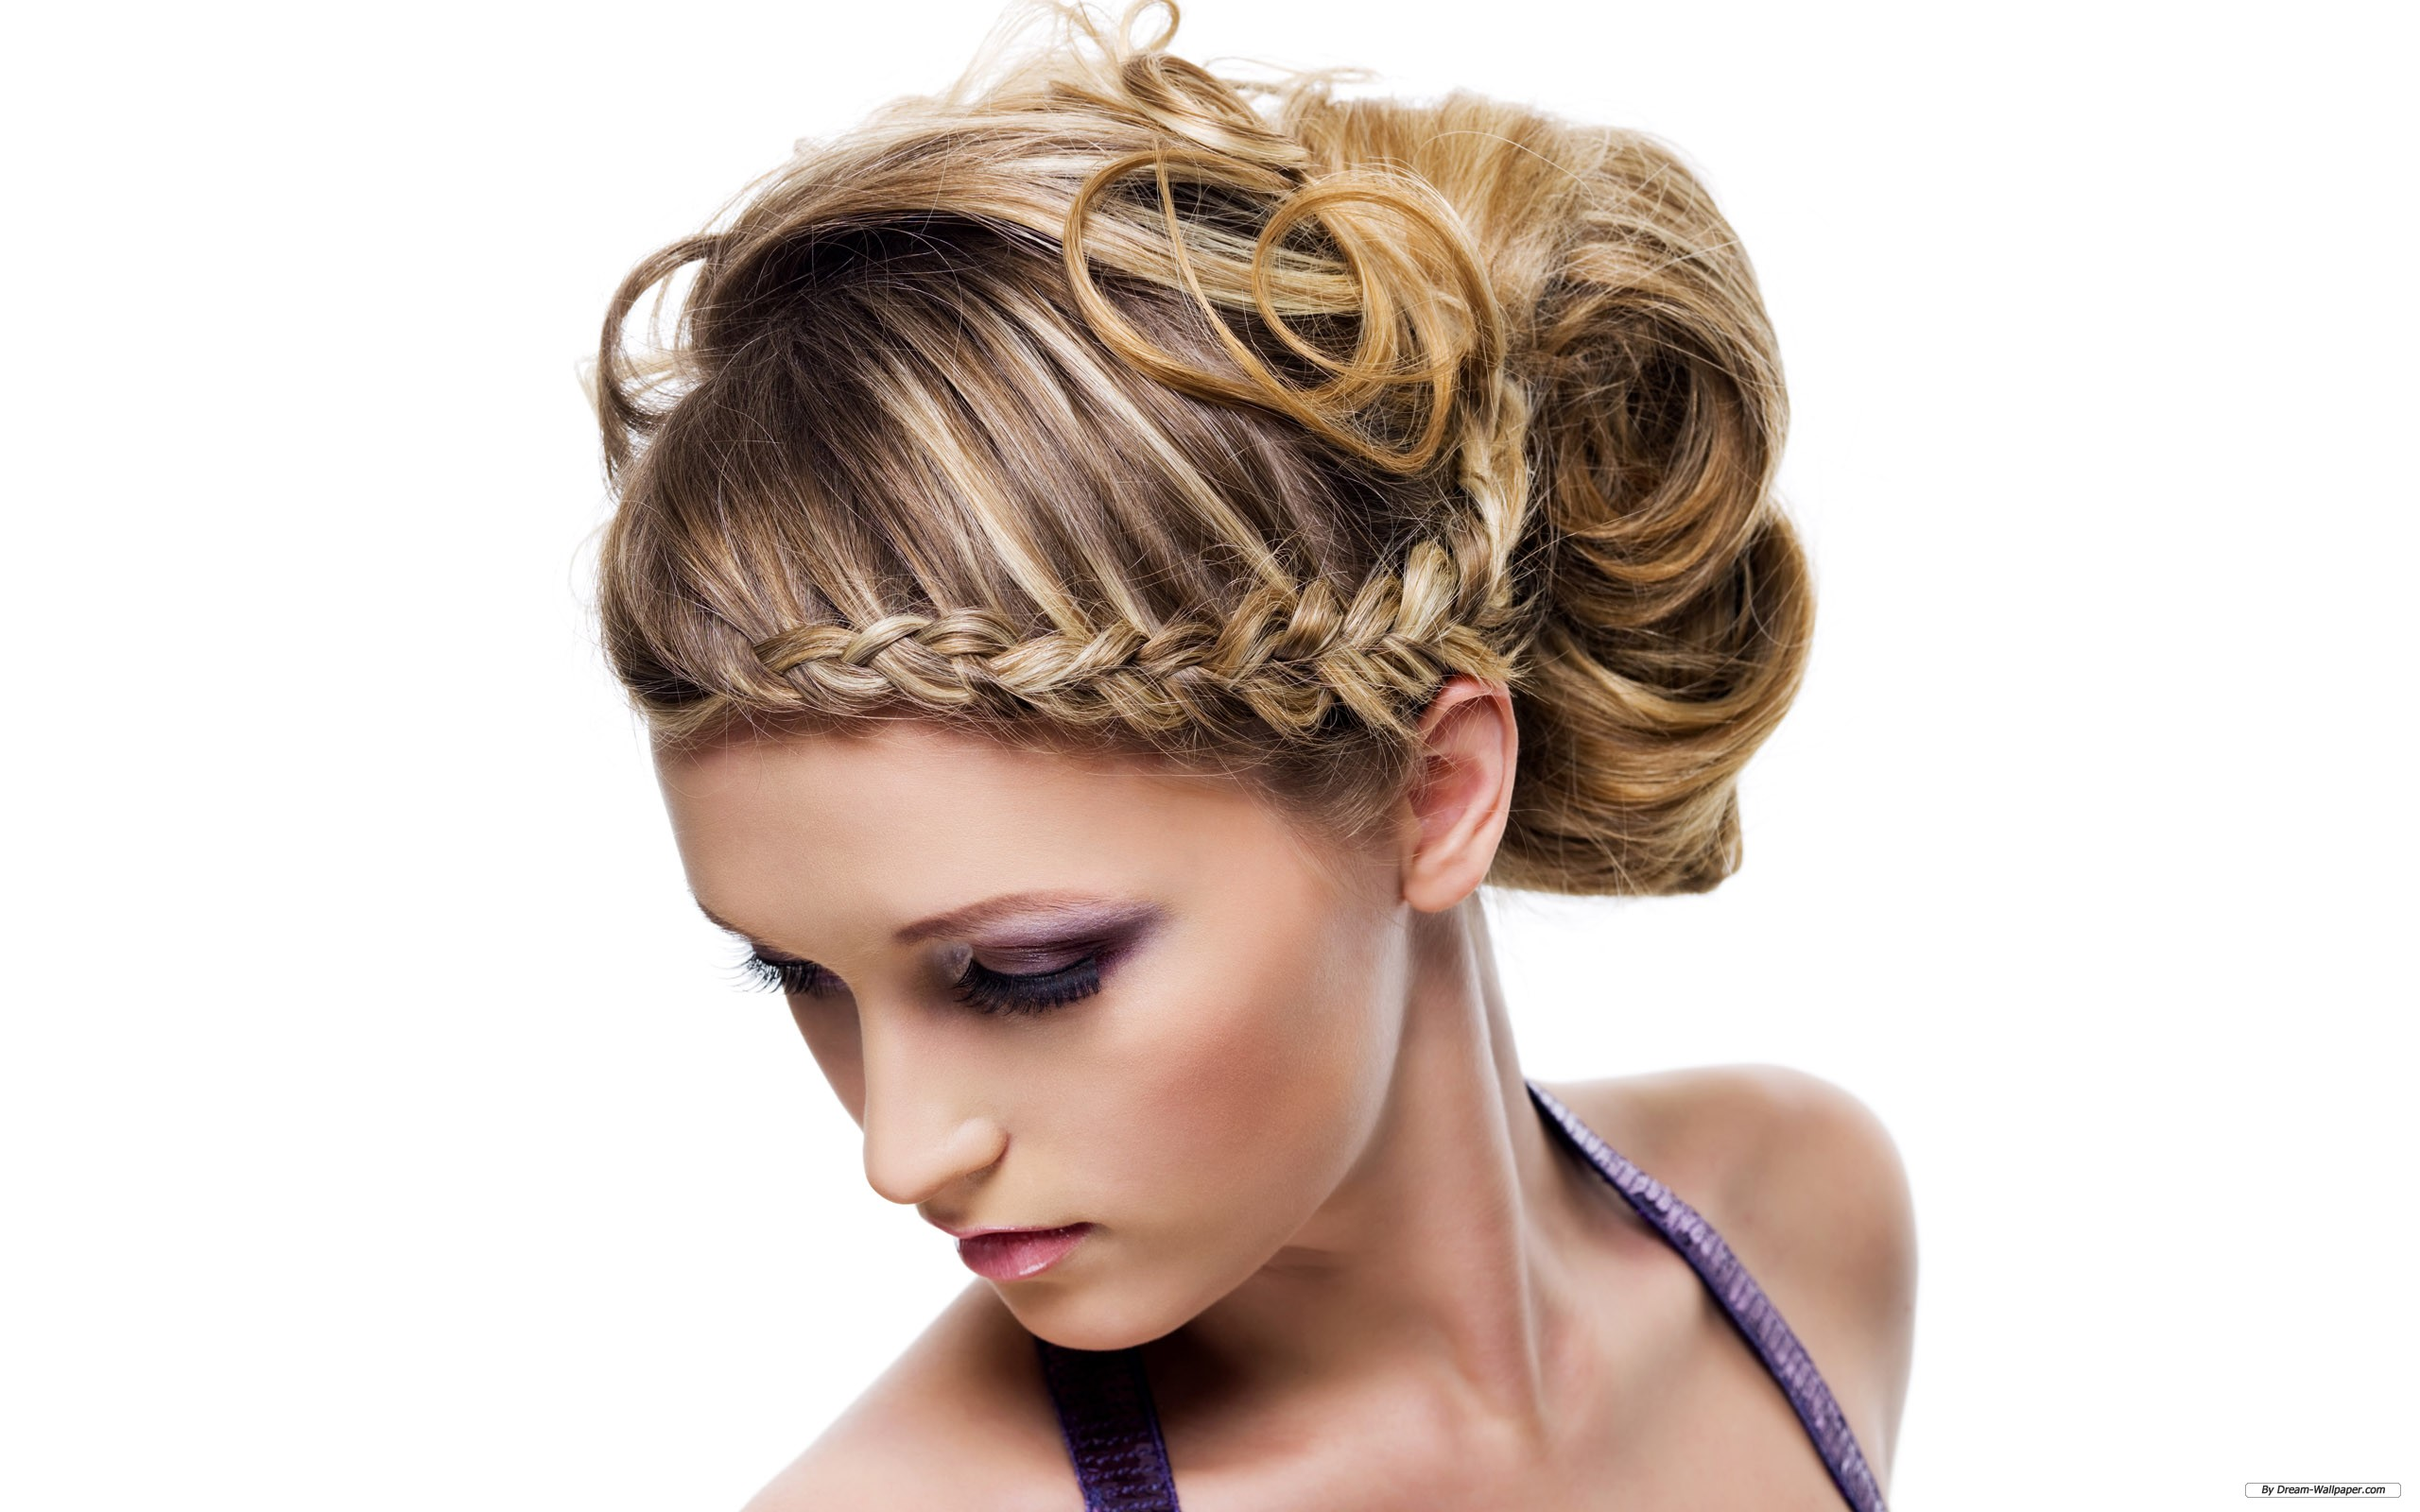 Women Hair Styles Hairstyle Index 500785 San Ramon Danville